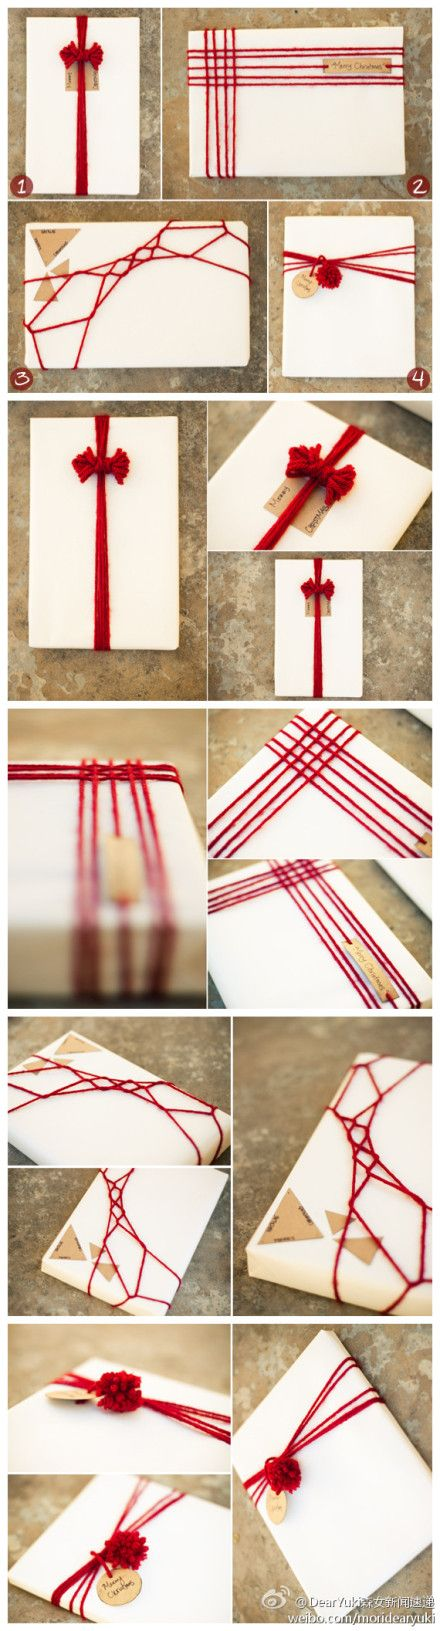 ideas for yarn >> love all the different ways to tie yarn around a gift box!